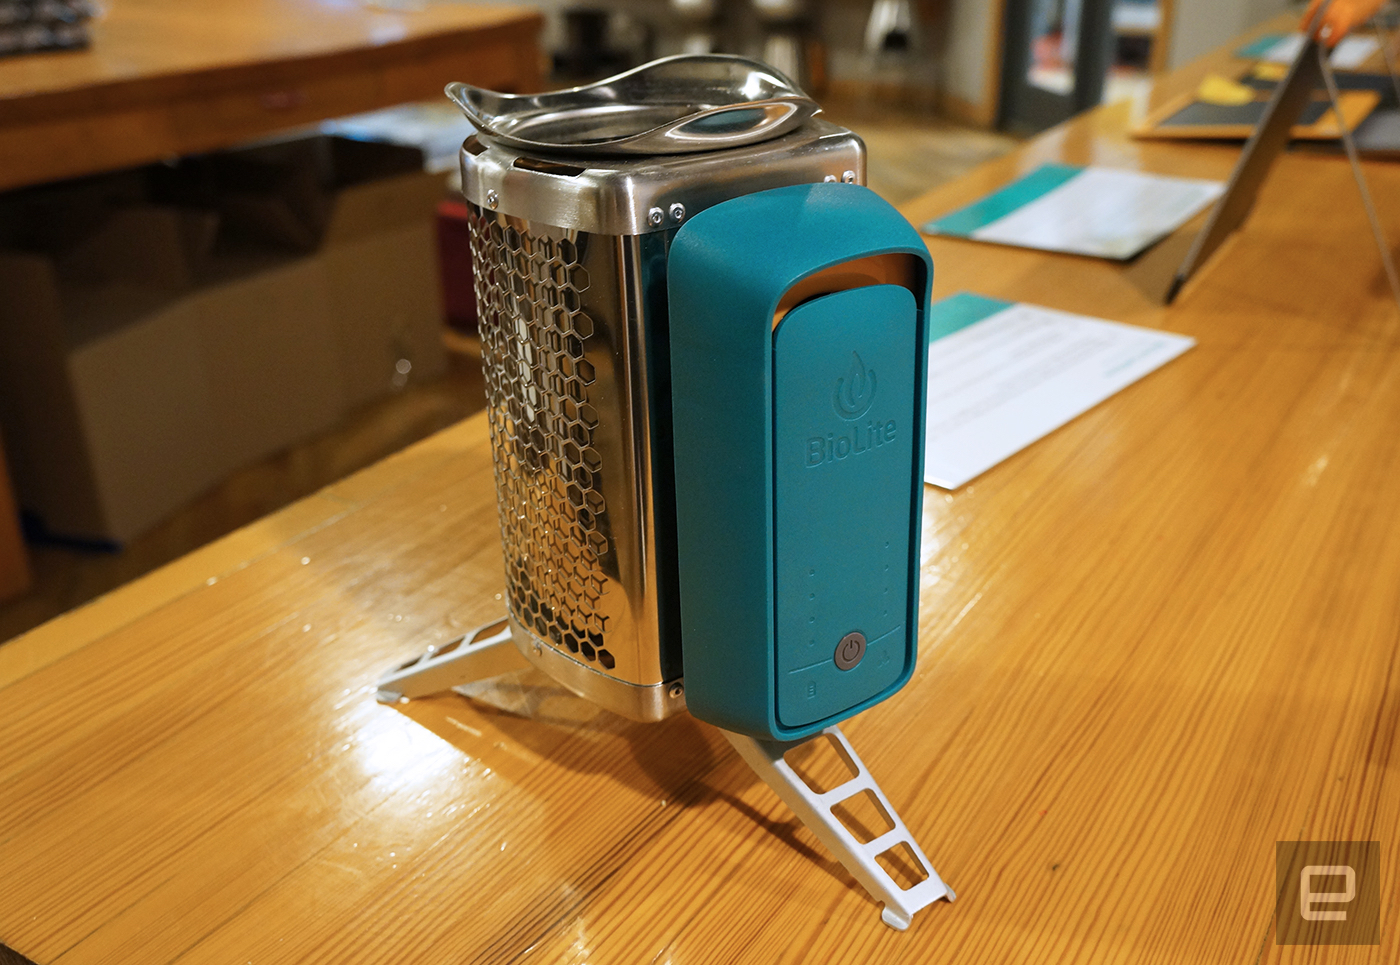 BioLite's latest gear includes a stove, lamp and a pair of solar panels